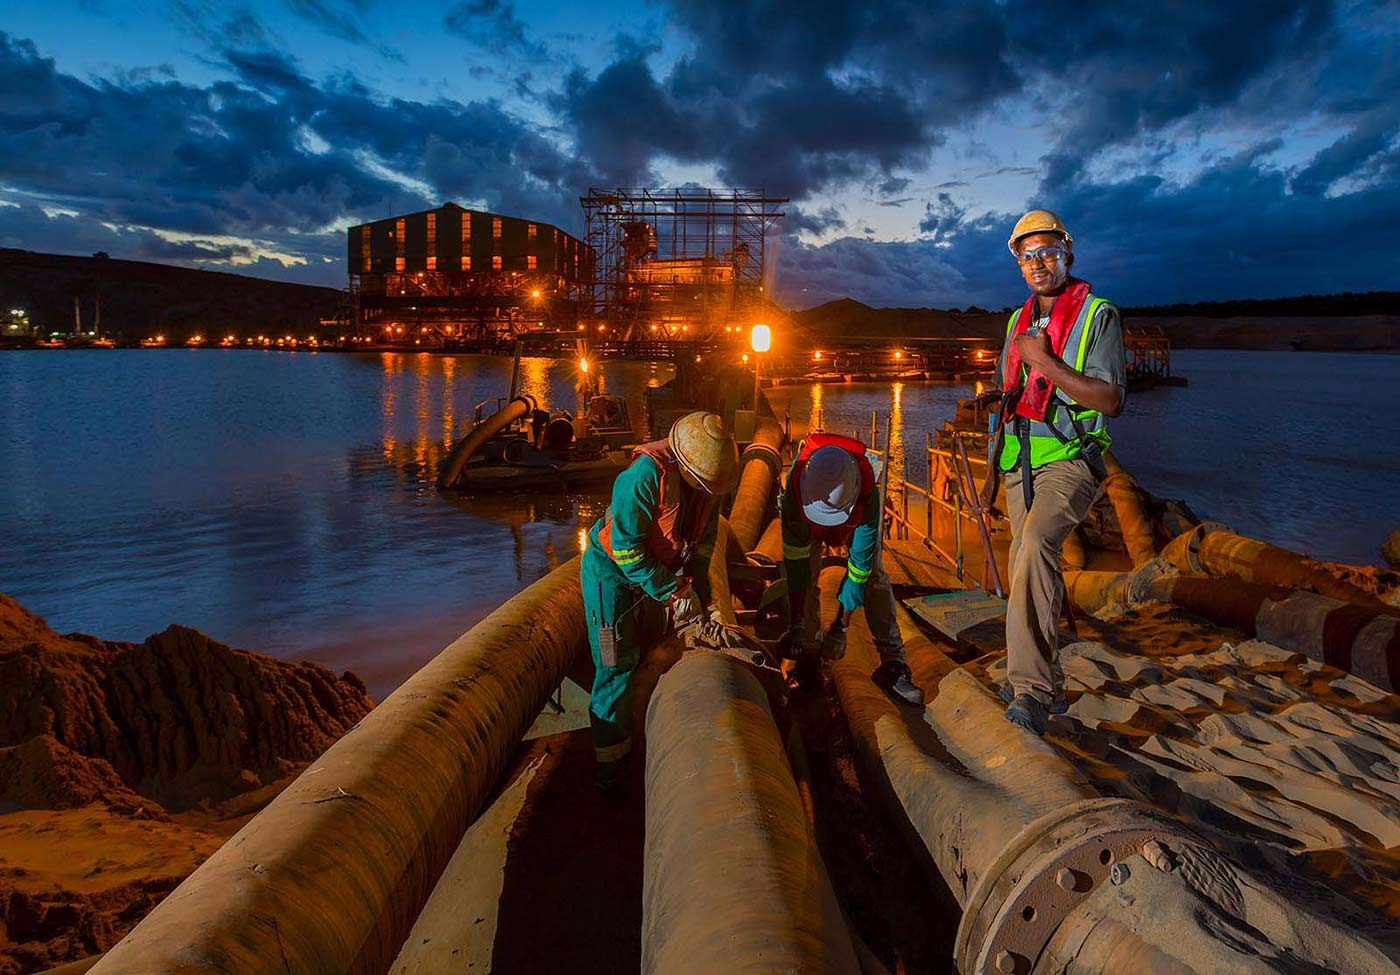 Workers repair slurry pipelines - mining photography by Planet KB